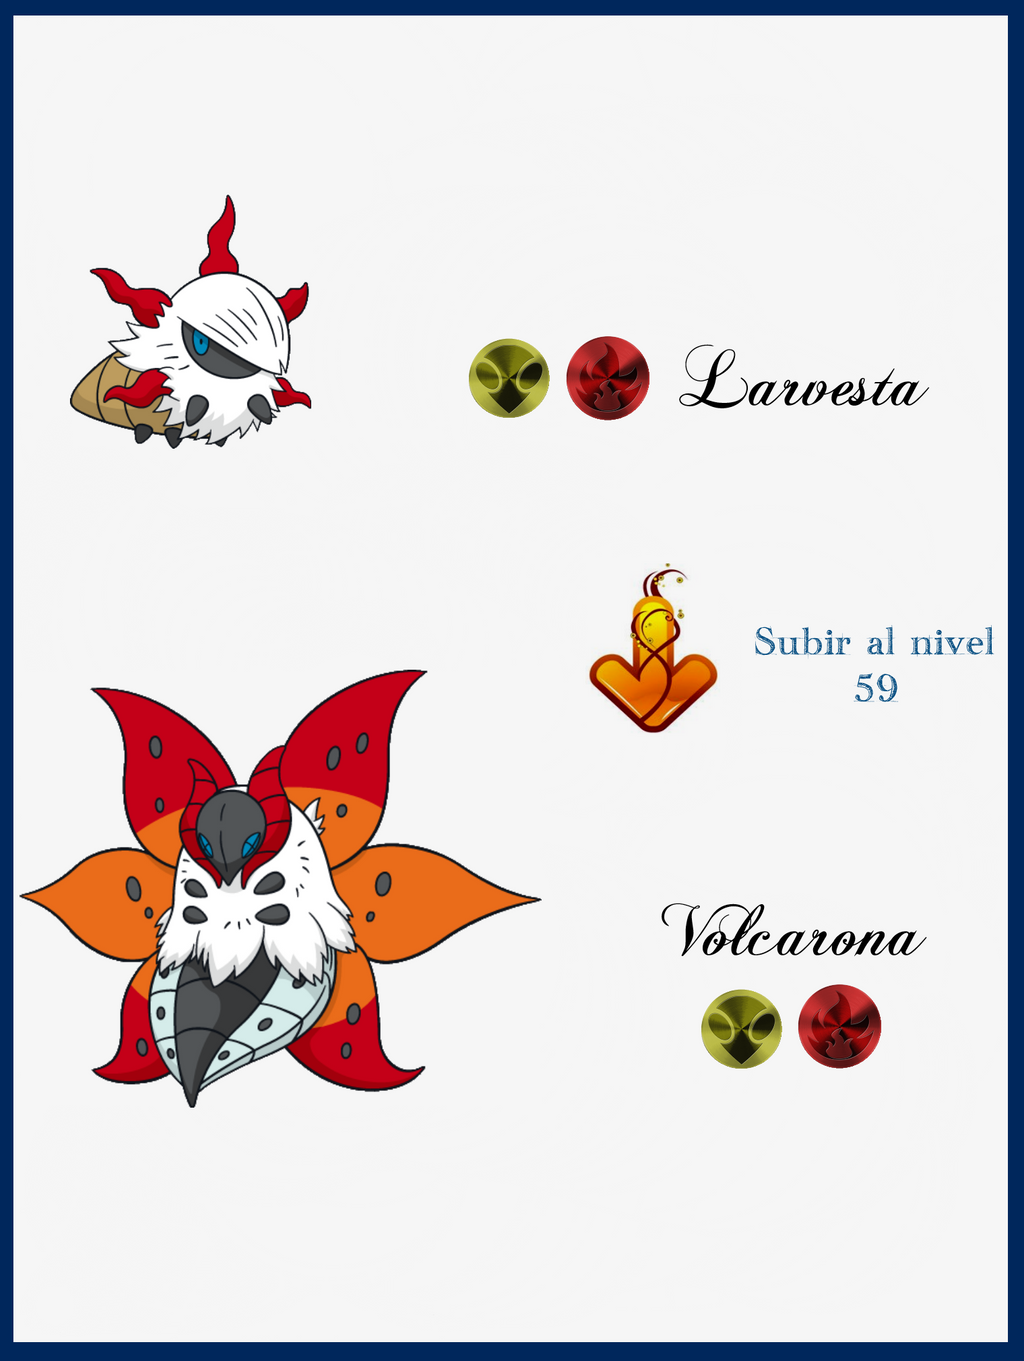 Pokemon Chimchar Evolution Images | Pokemon Images